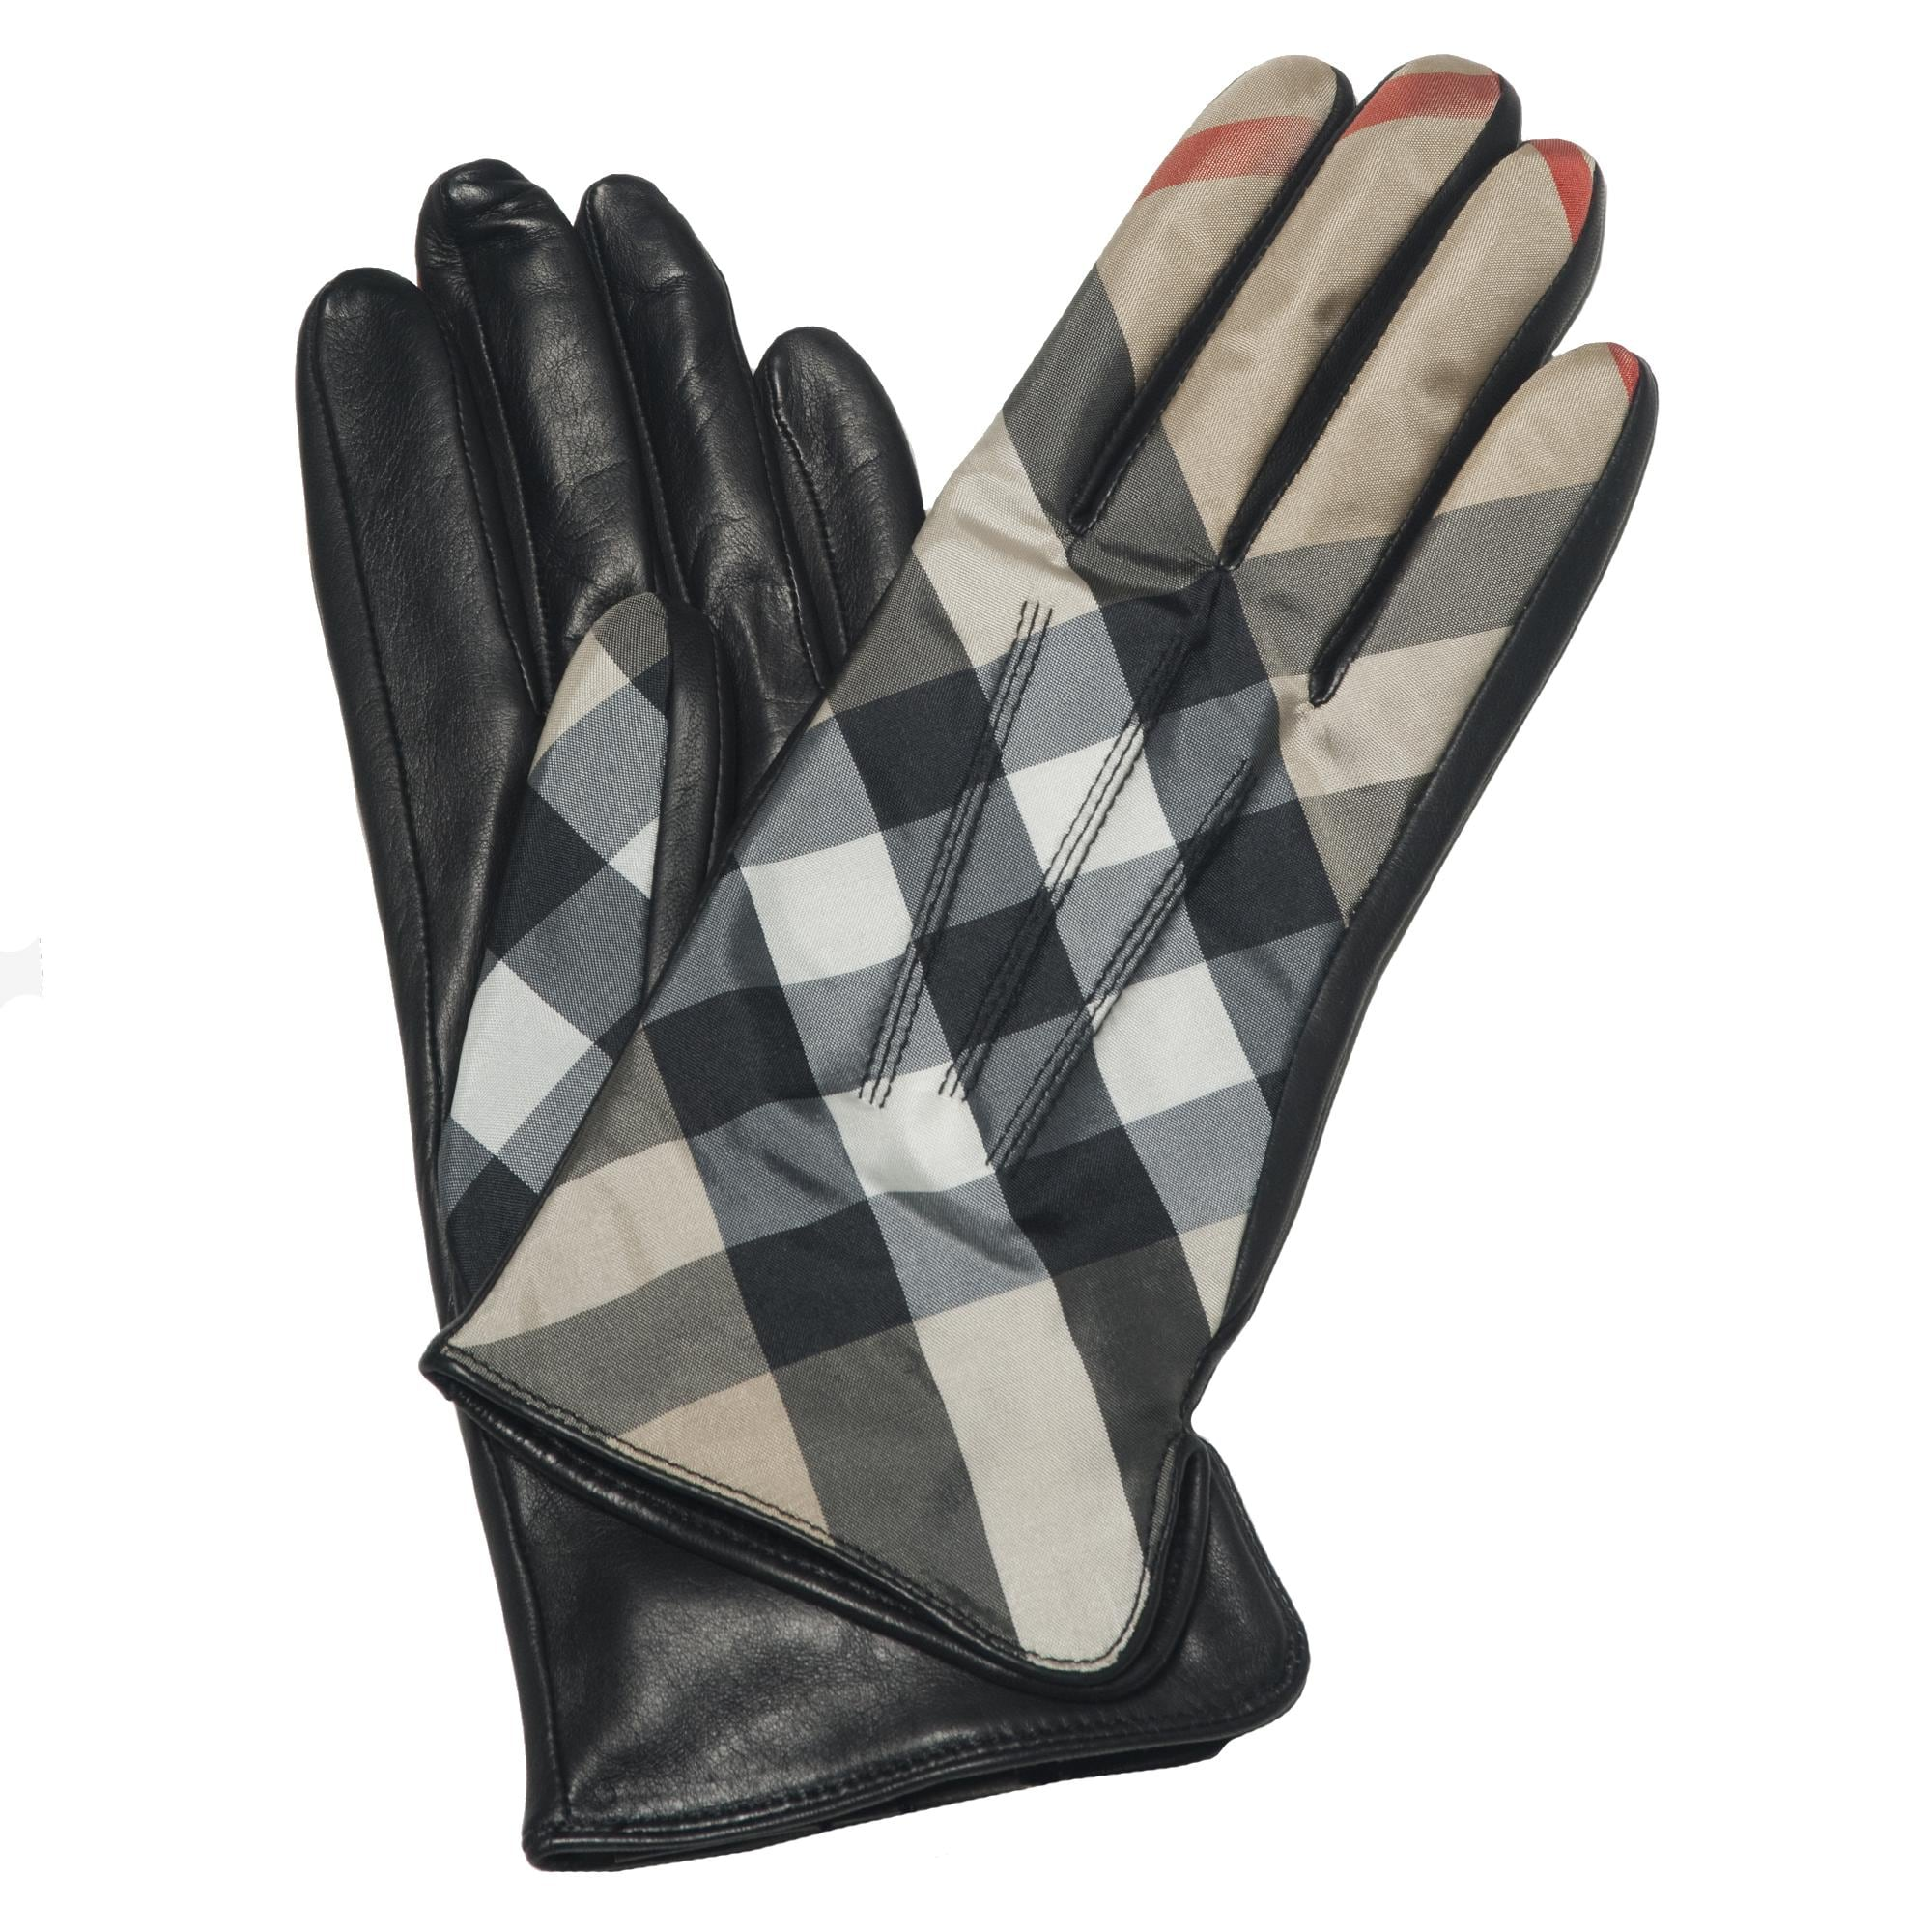 Overstock mens leather gloves - Burberry Check Print Gloves